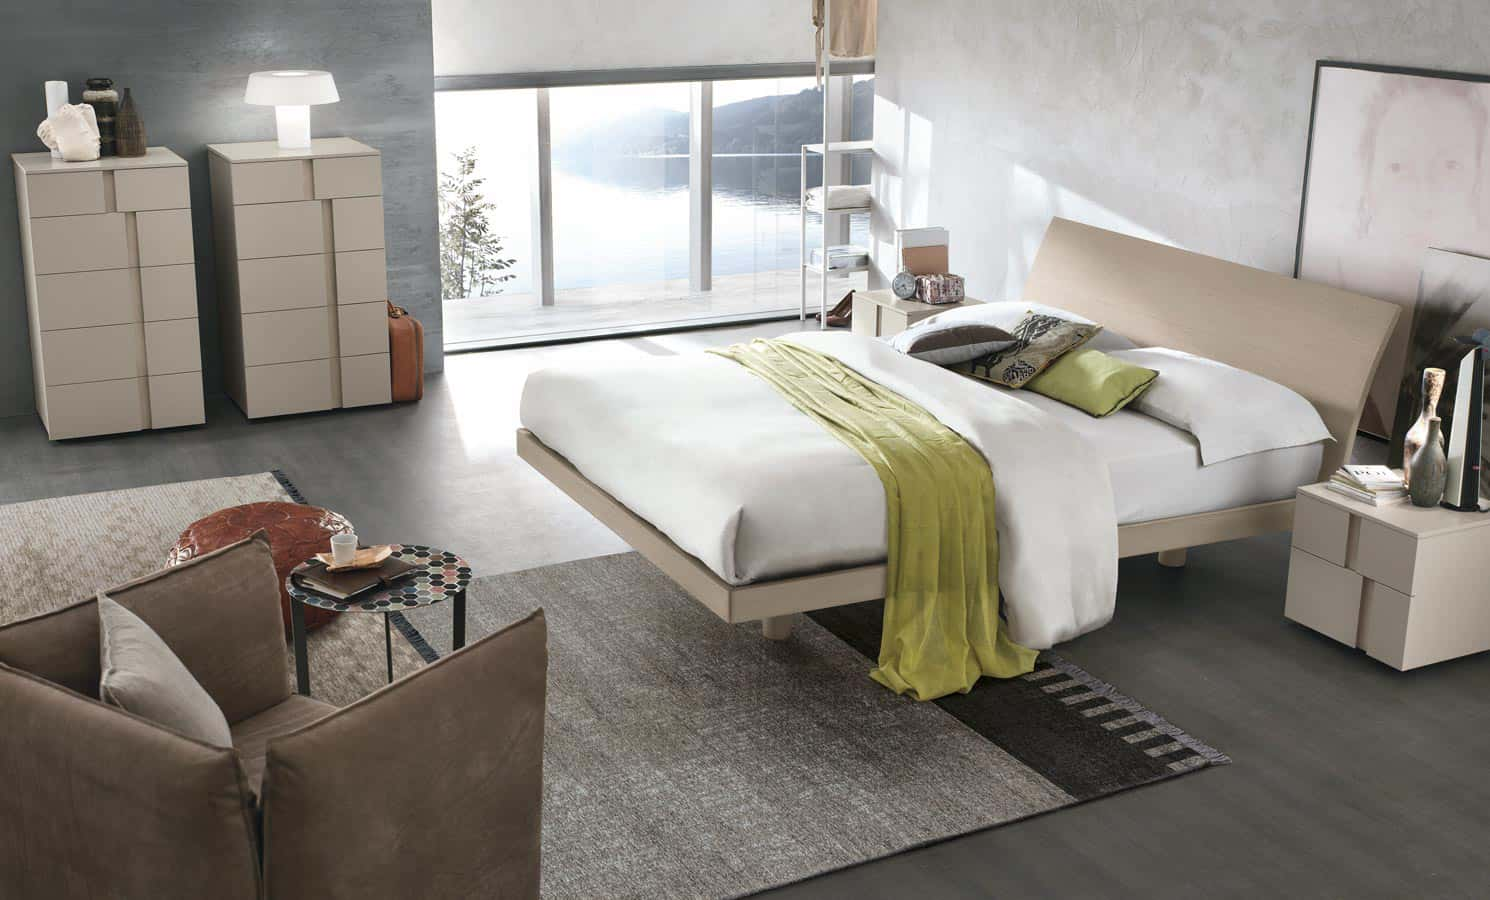 2MD Beds and Furniture for Bedrooms - Tomasella - Zanette